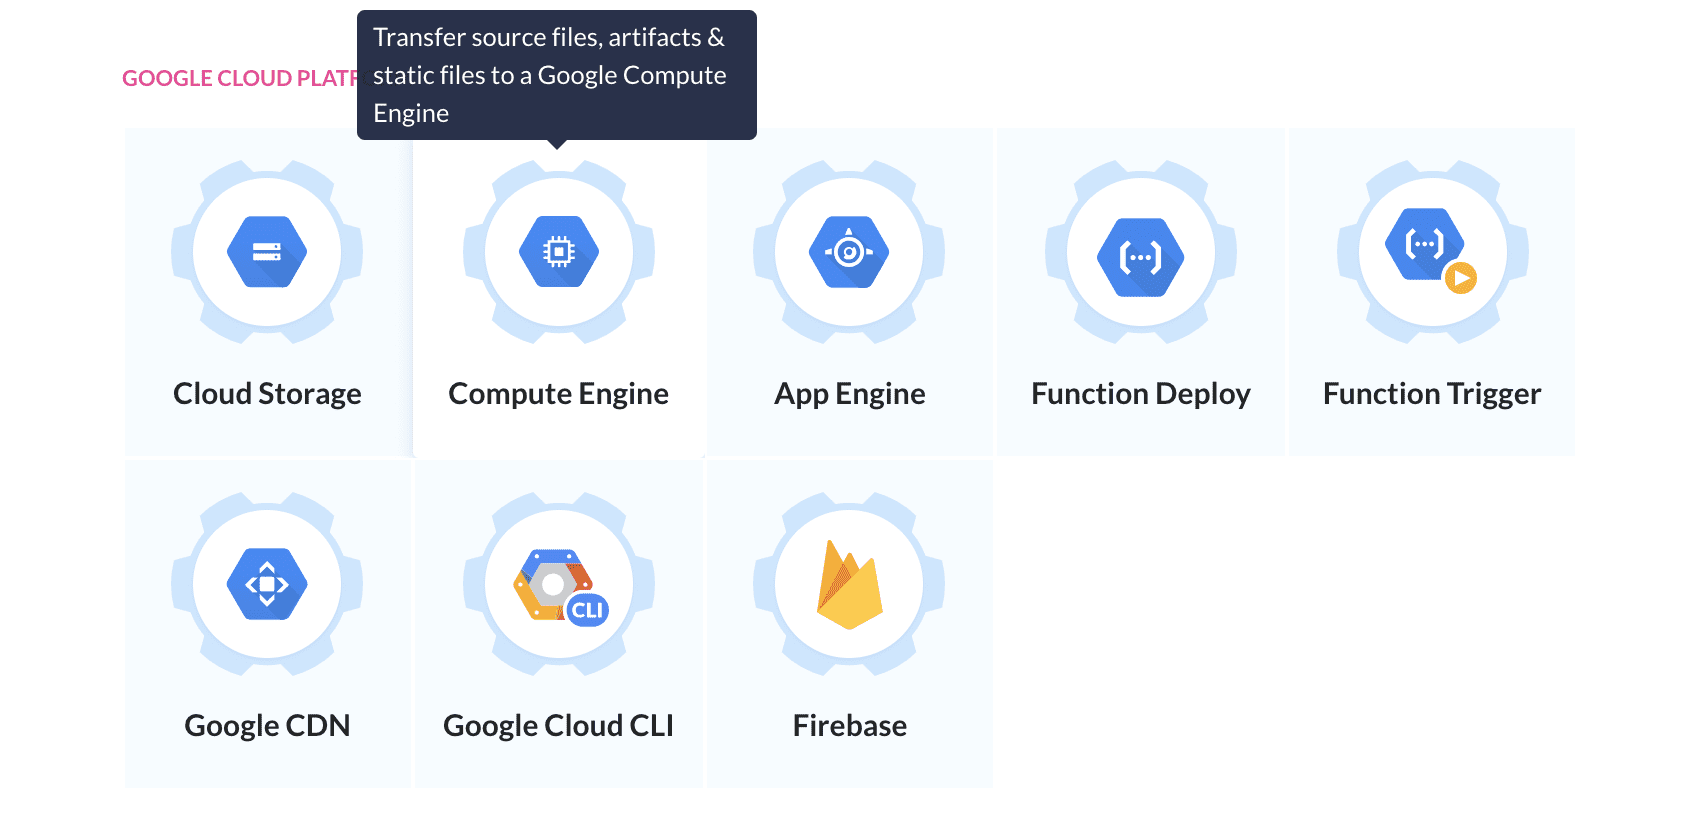 Google Cloud actions